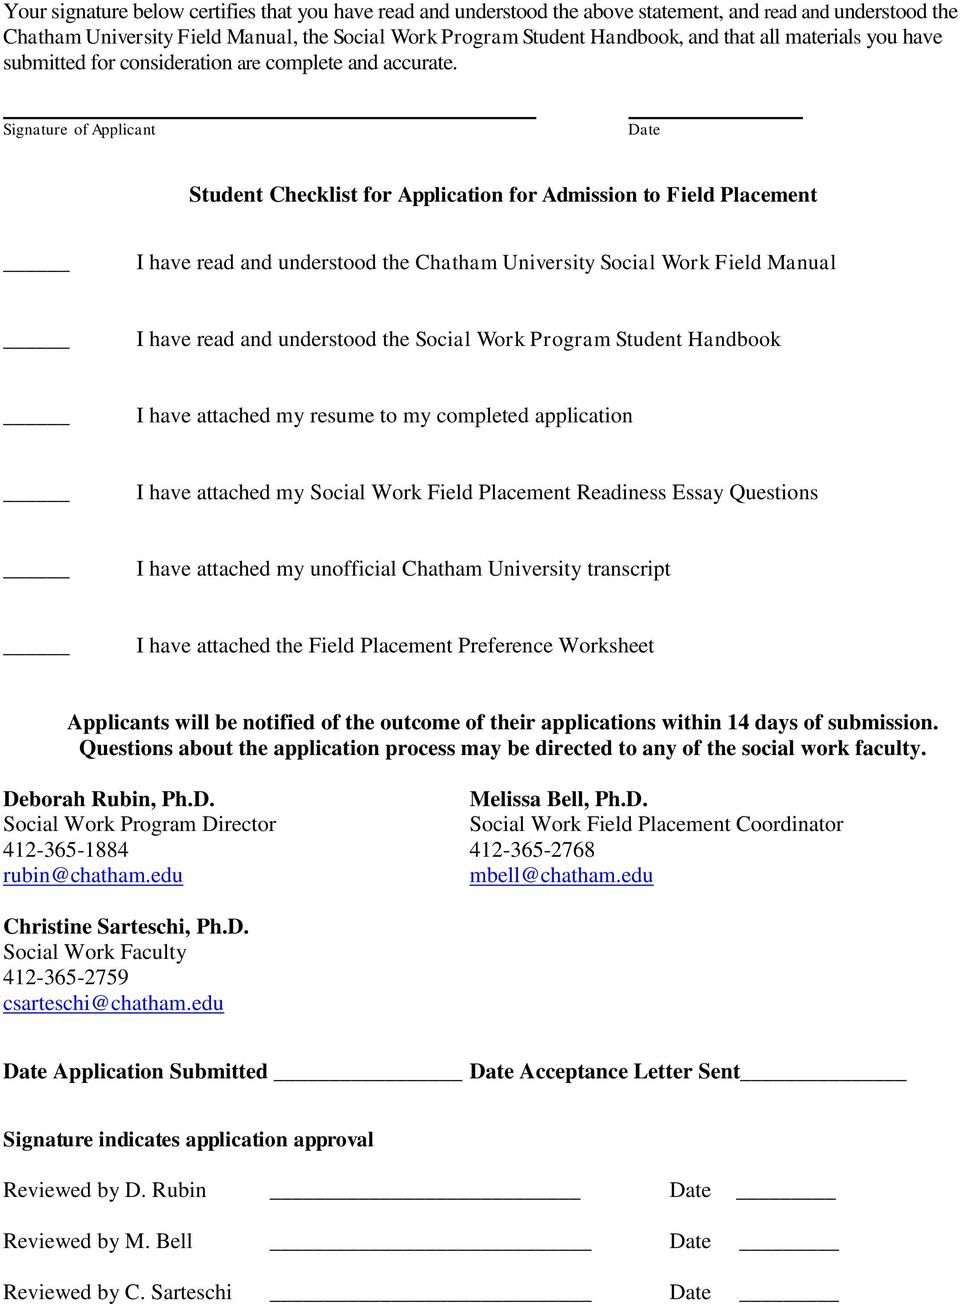 Signature of Applicant Date Student Checklist for Application for Admission to Field Placement I have read and understood the Chatham University Social Work Field Manual I have read and understood